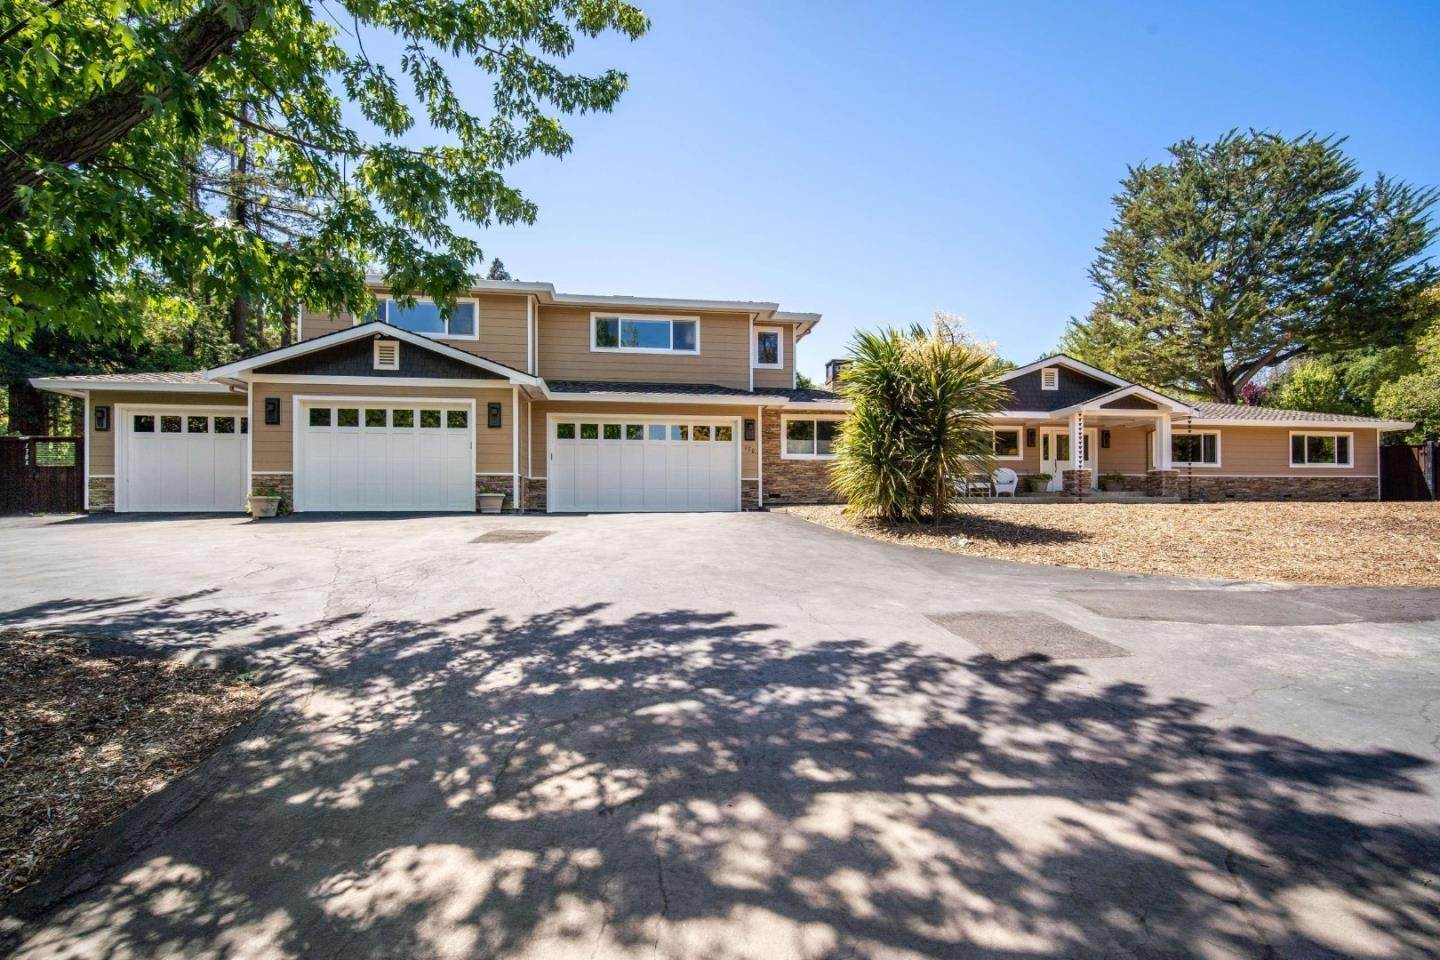 Single Family Homes for Sale at 170 Woodside Drive Woodside, California 94062 United States